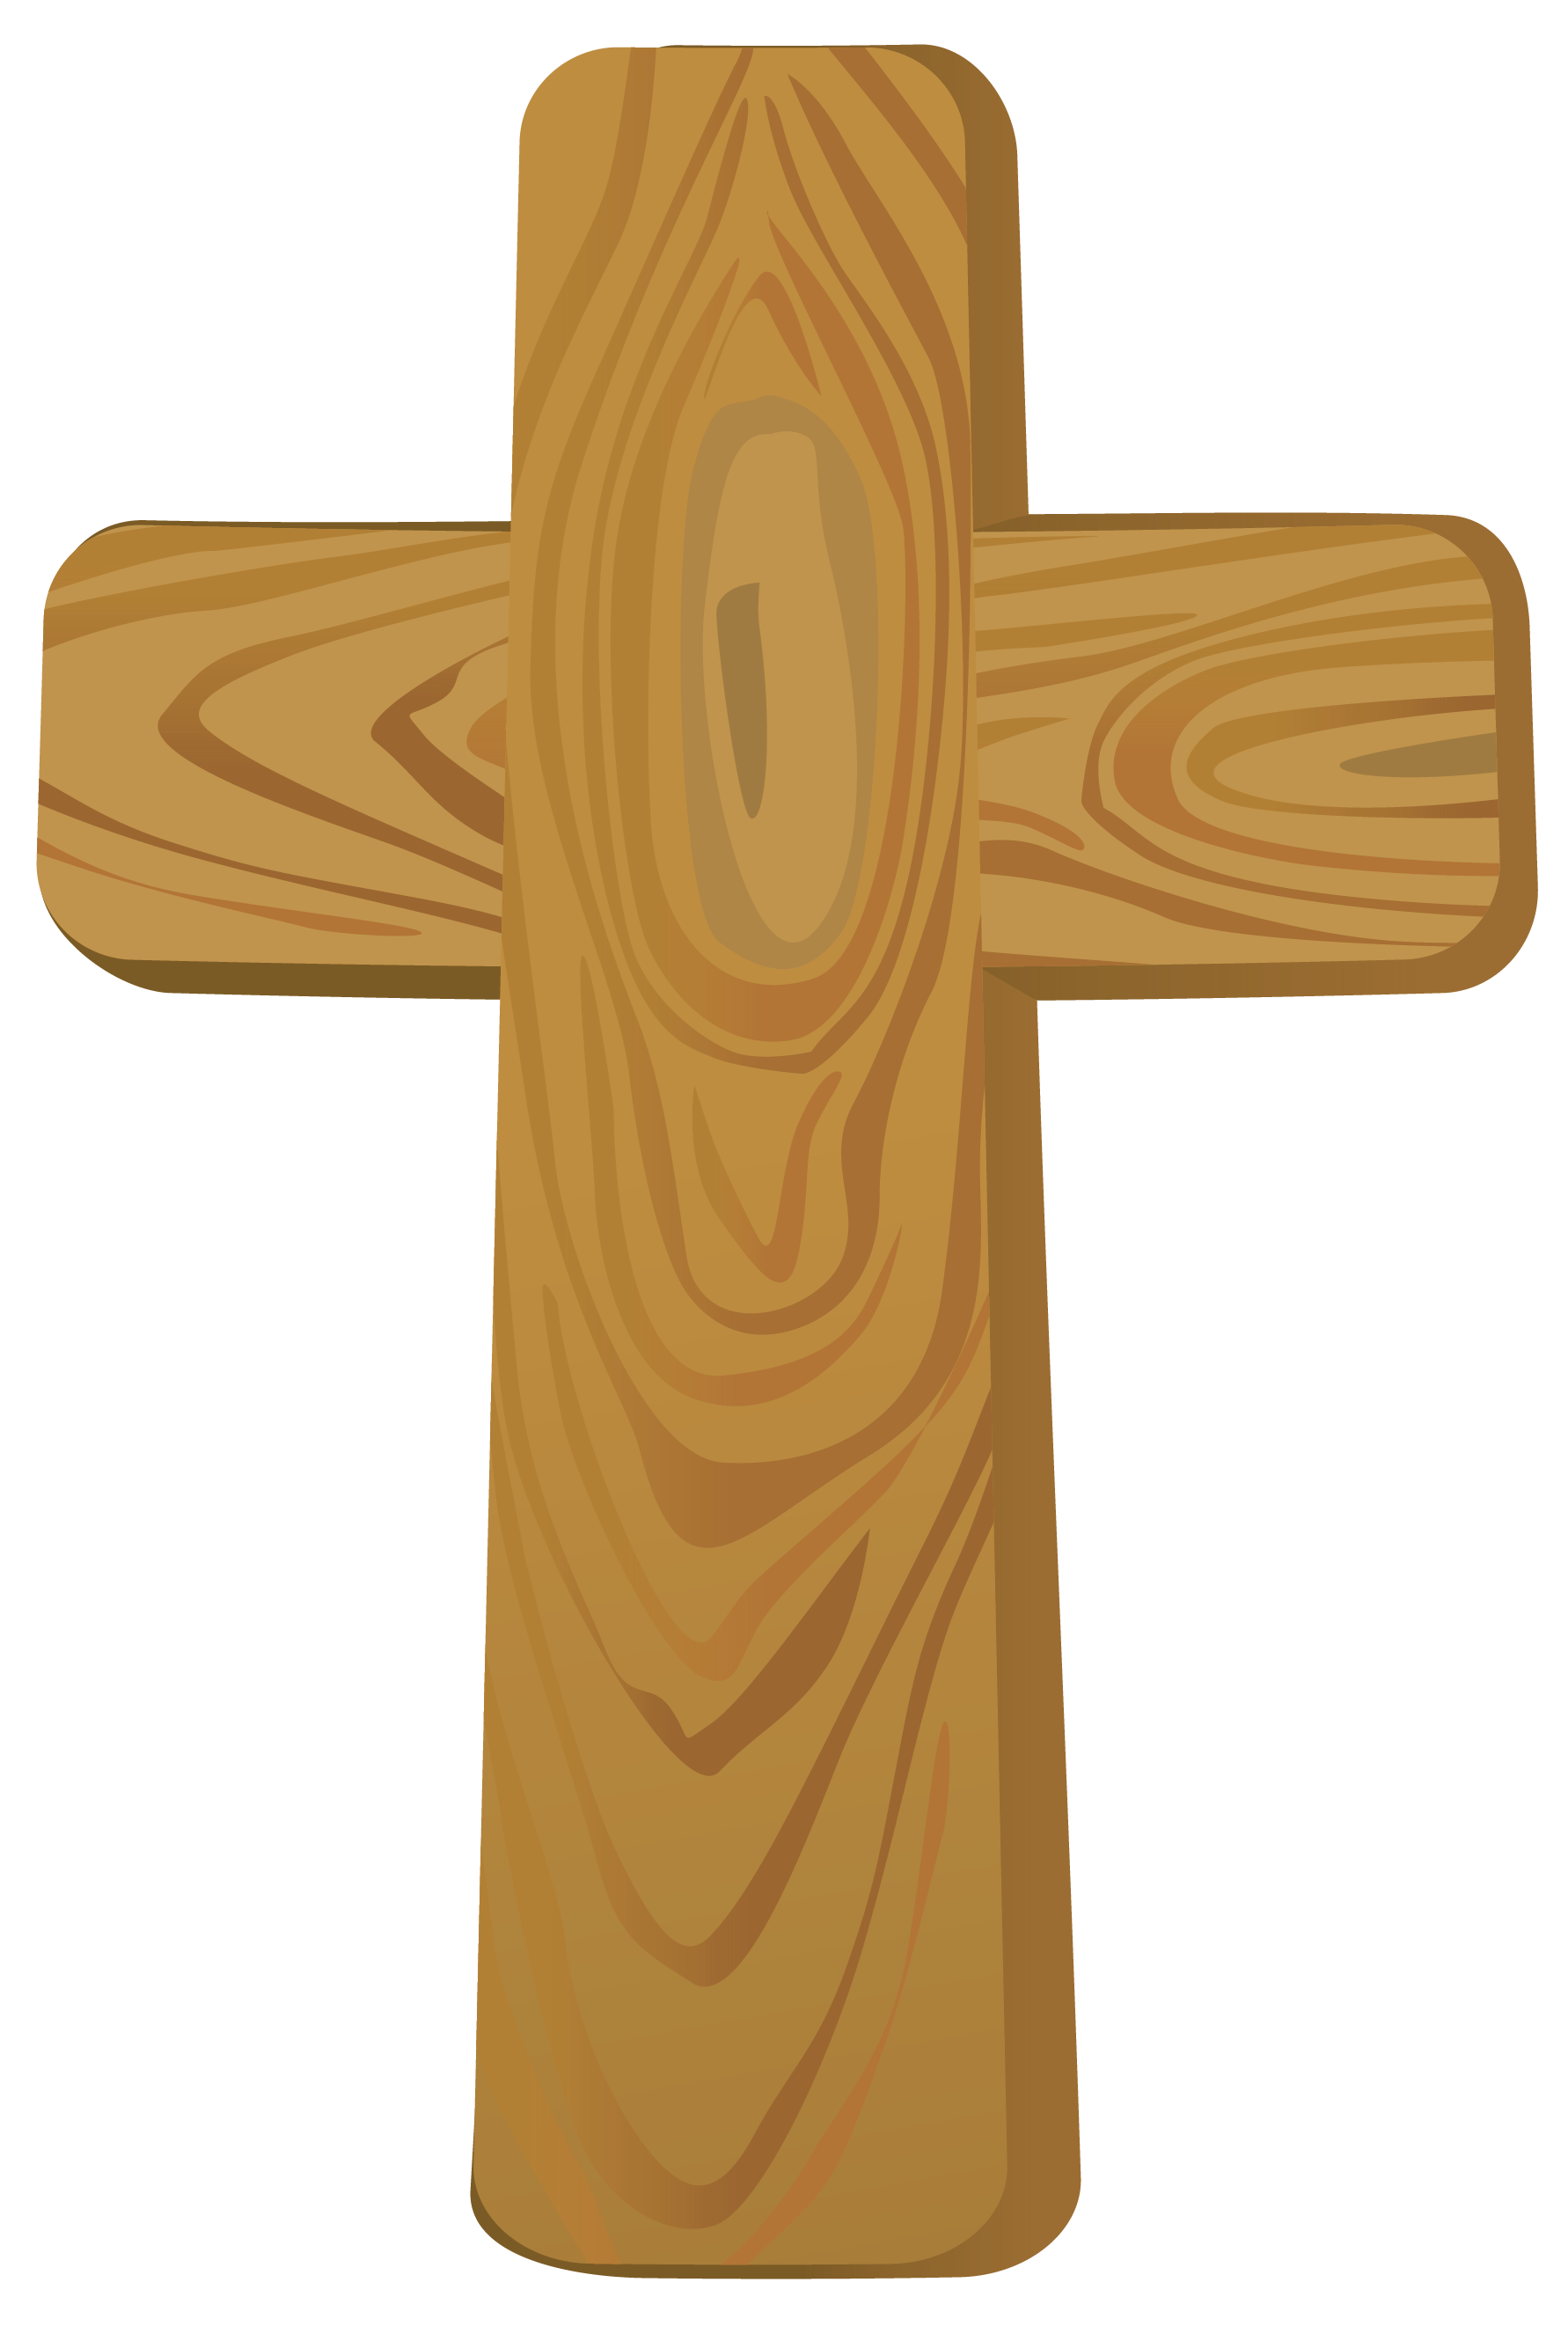 Cross clipart png transparent stock Wooden Cross PNG Clipart Picture transparent stock